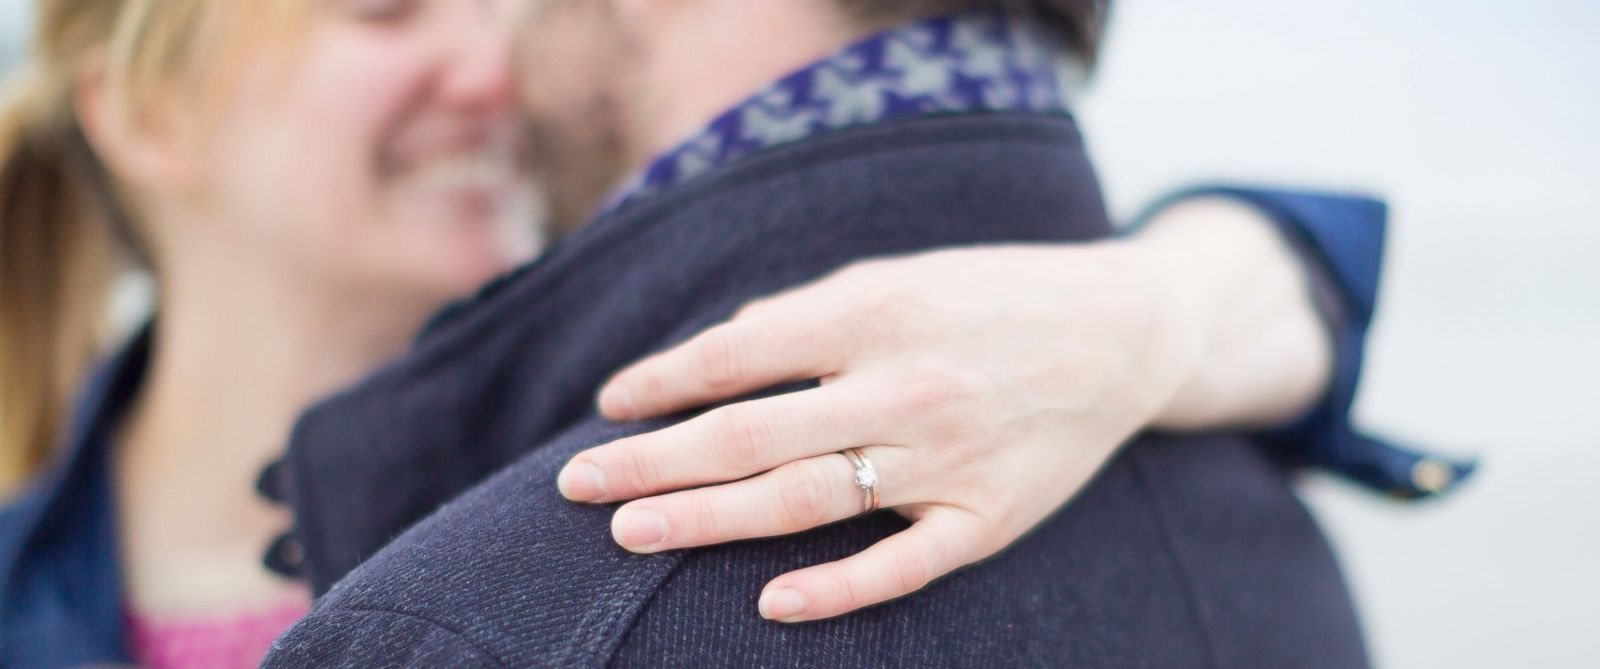 PHOTO: There are important financial questions you should ask your partner before getting married.